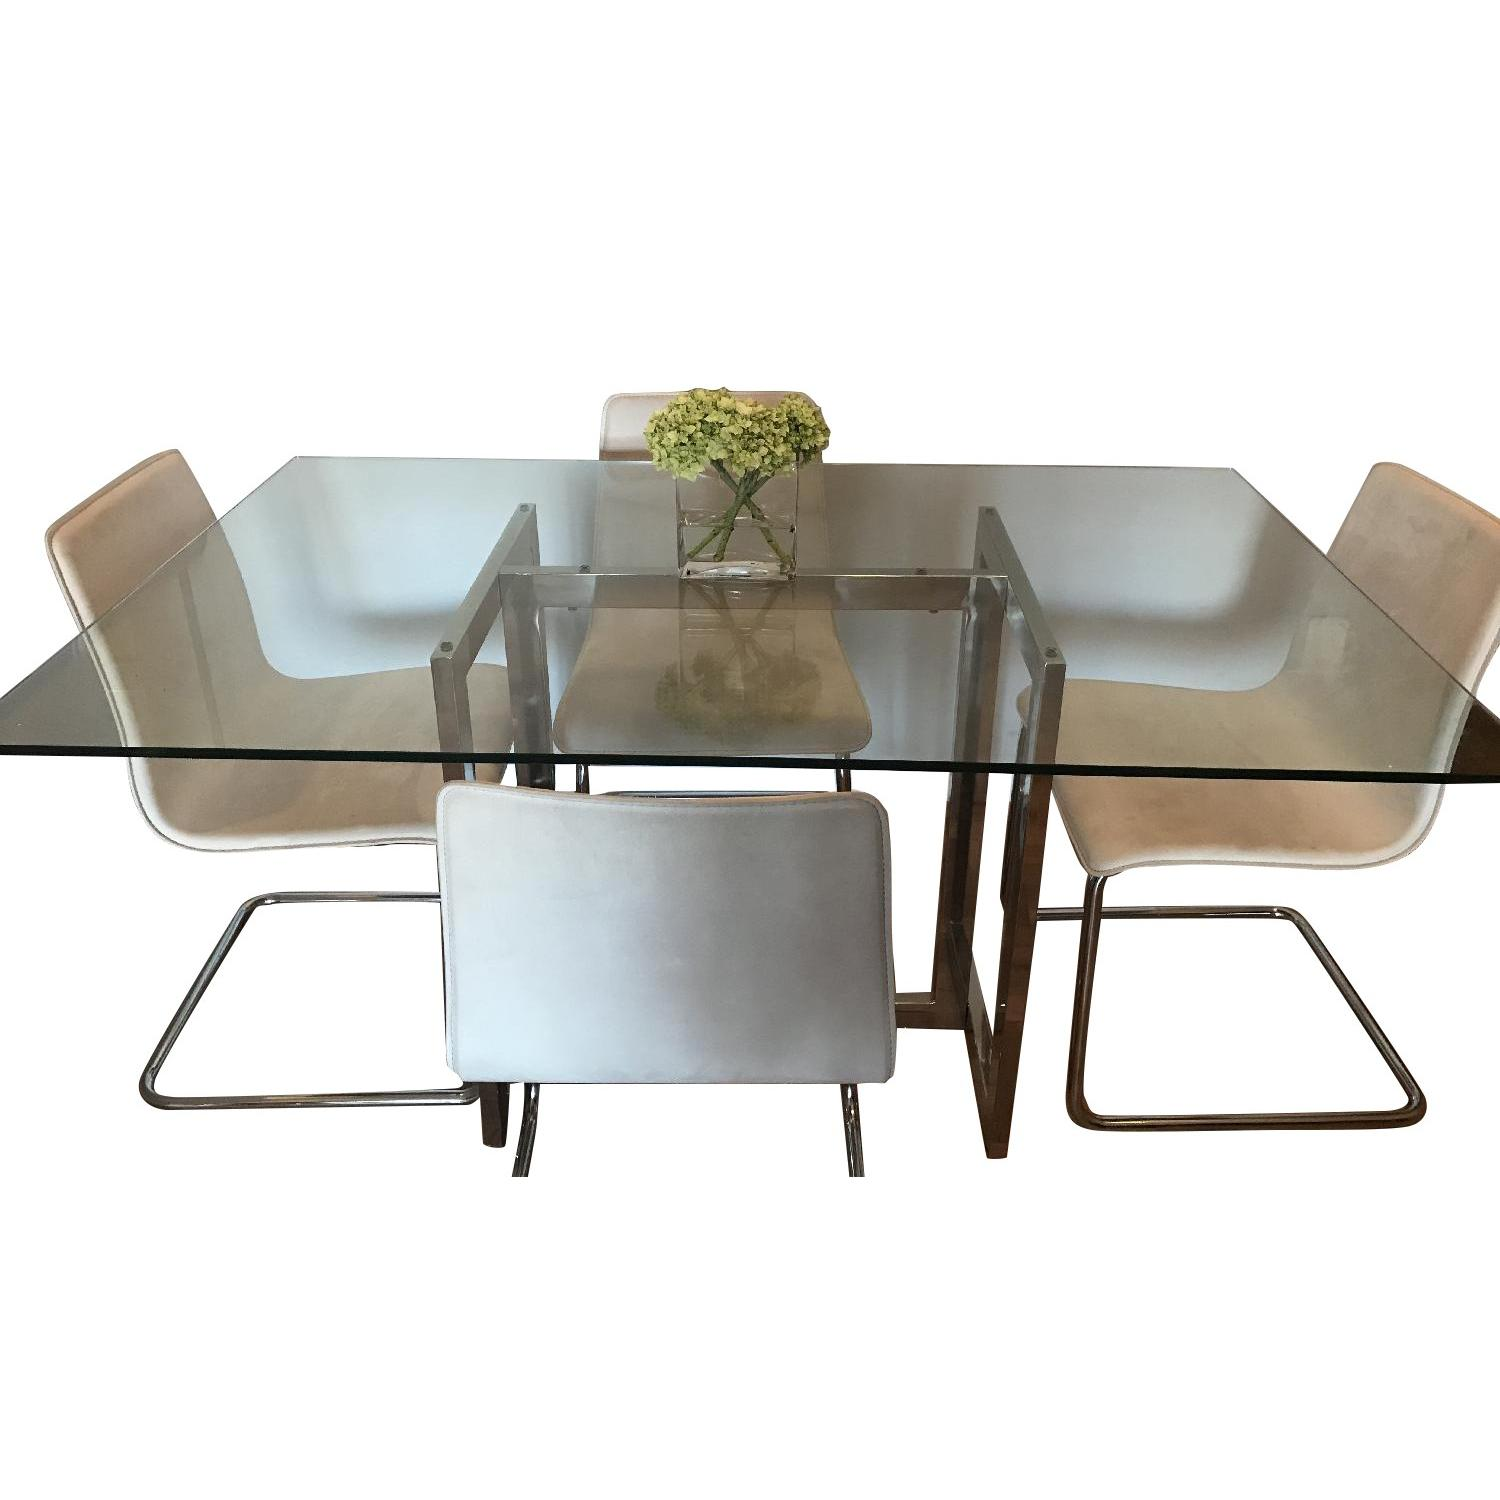 West Elm GlassChrome Dining Table W CB Chairs AptDeco   Cb2 Kitchen Table